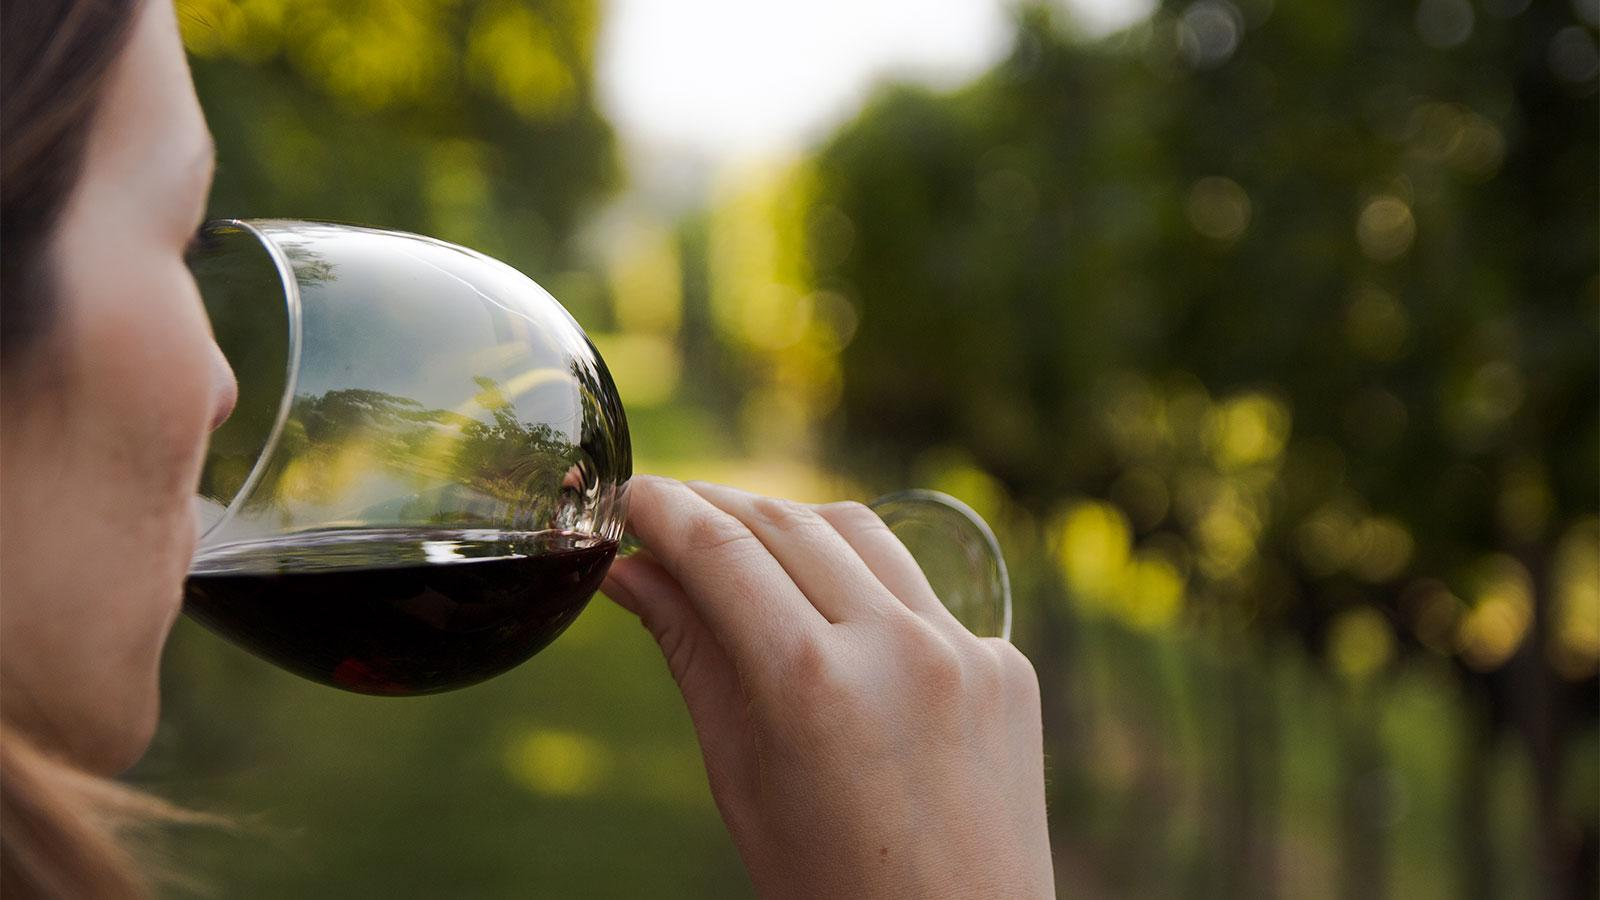 Sommelier Roundtable: How Did You Get into Wine?